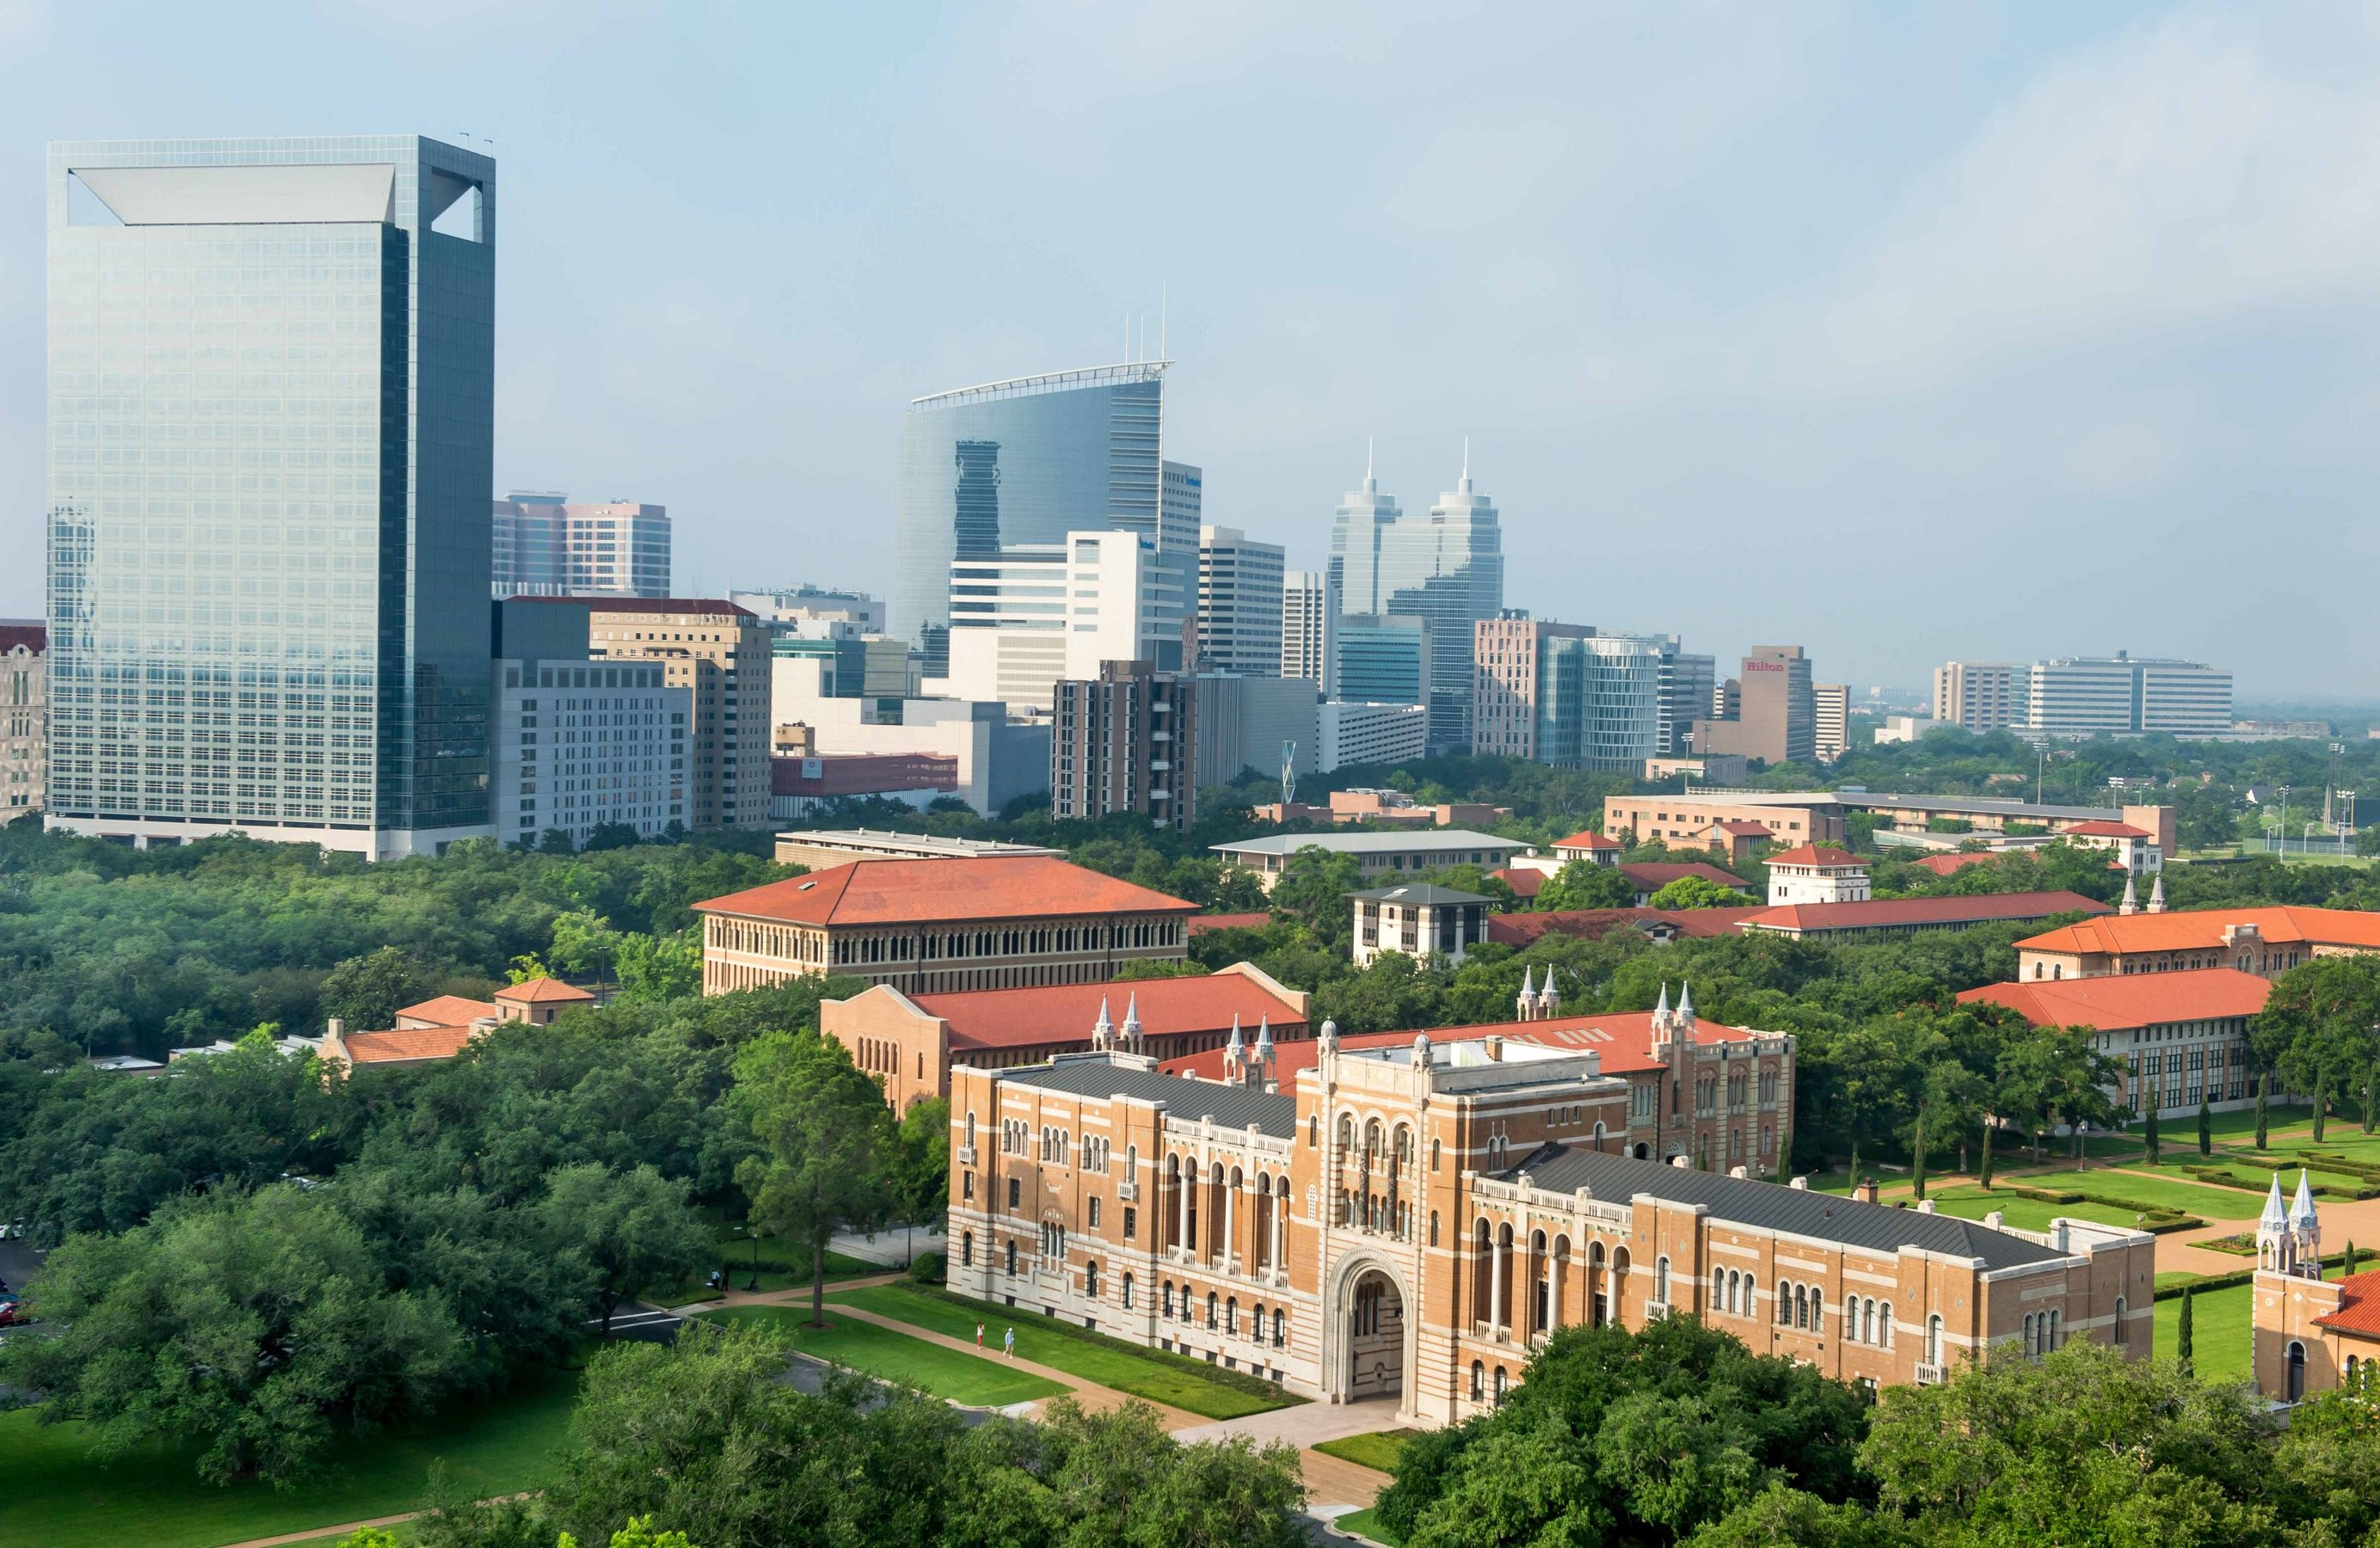 Aerial view of Rice University's Lovett Hall with tall buildings in the background